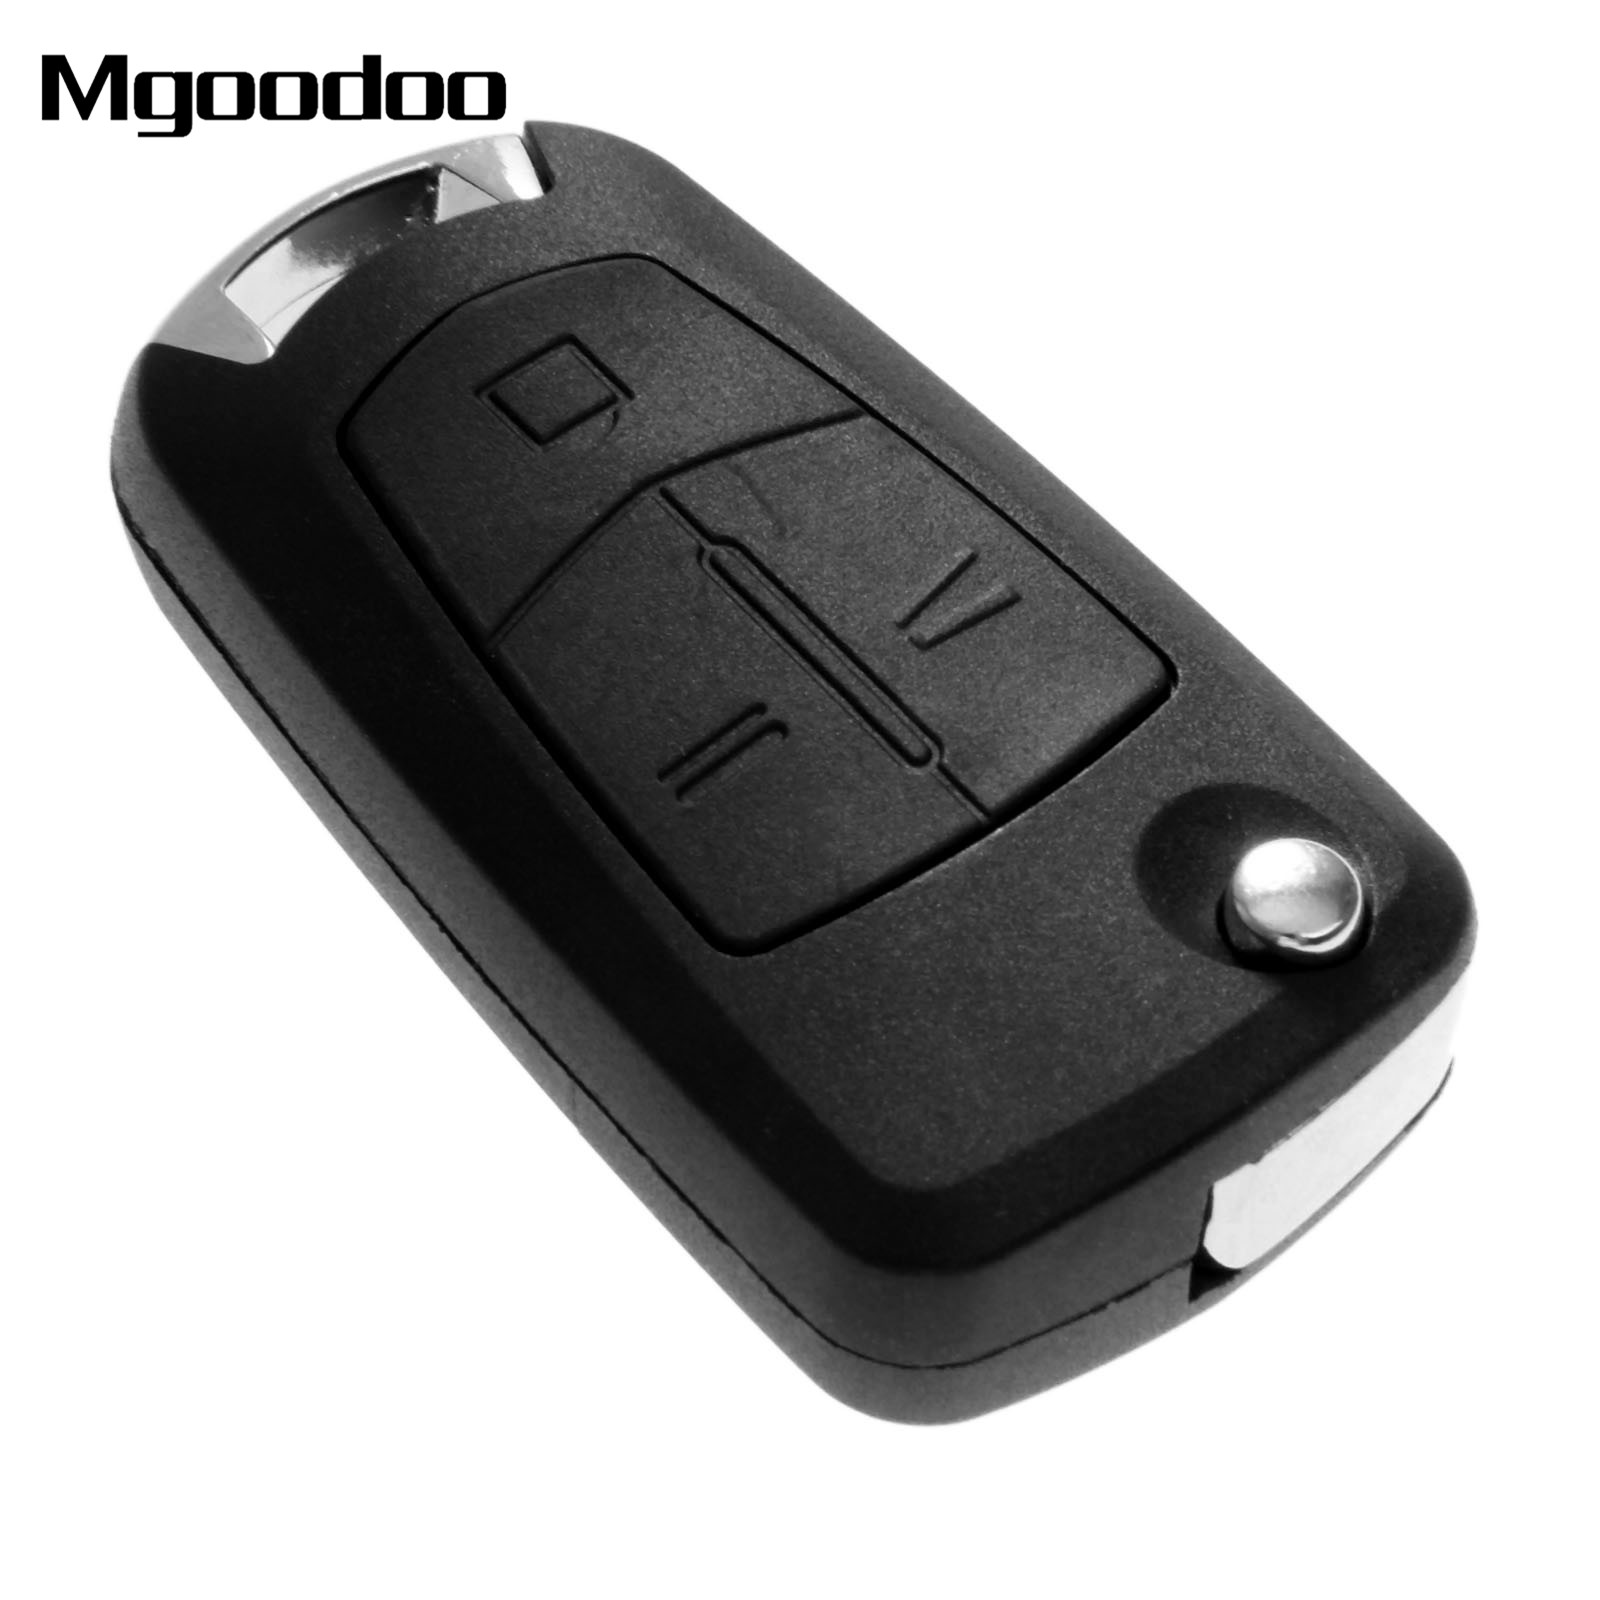 Mgoodoo 3 Buttons Car Flip Folding Remote Key Shell Case Fob For Vauxhall Opel Corsa Astra Kadett Monza Montana Uncut Car Covers in Car Key from Automobiles Motorcycles